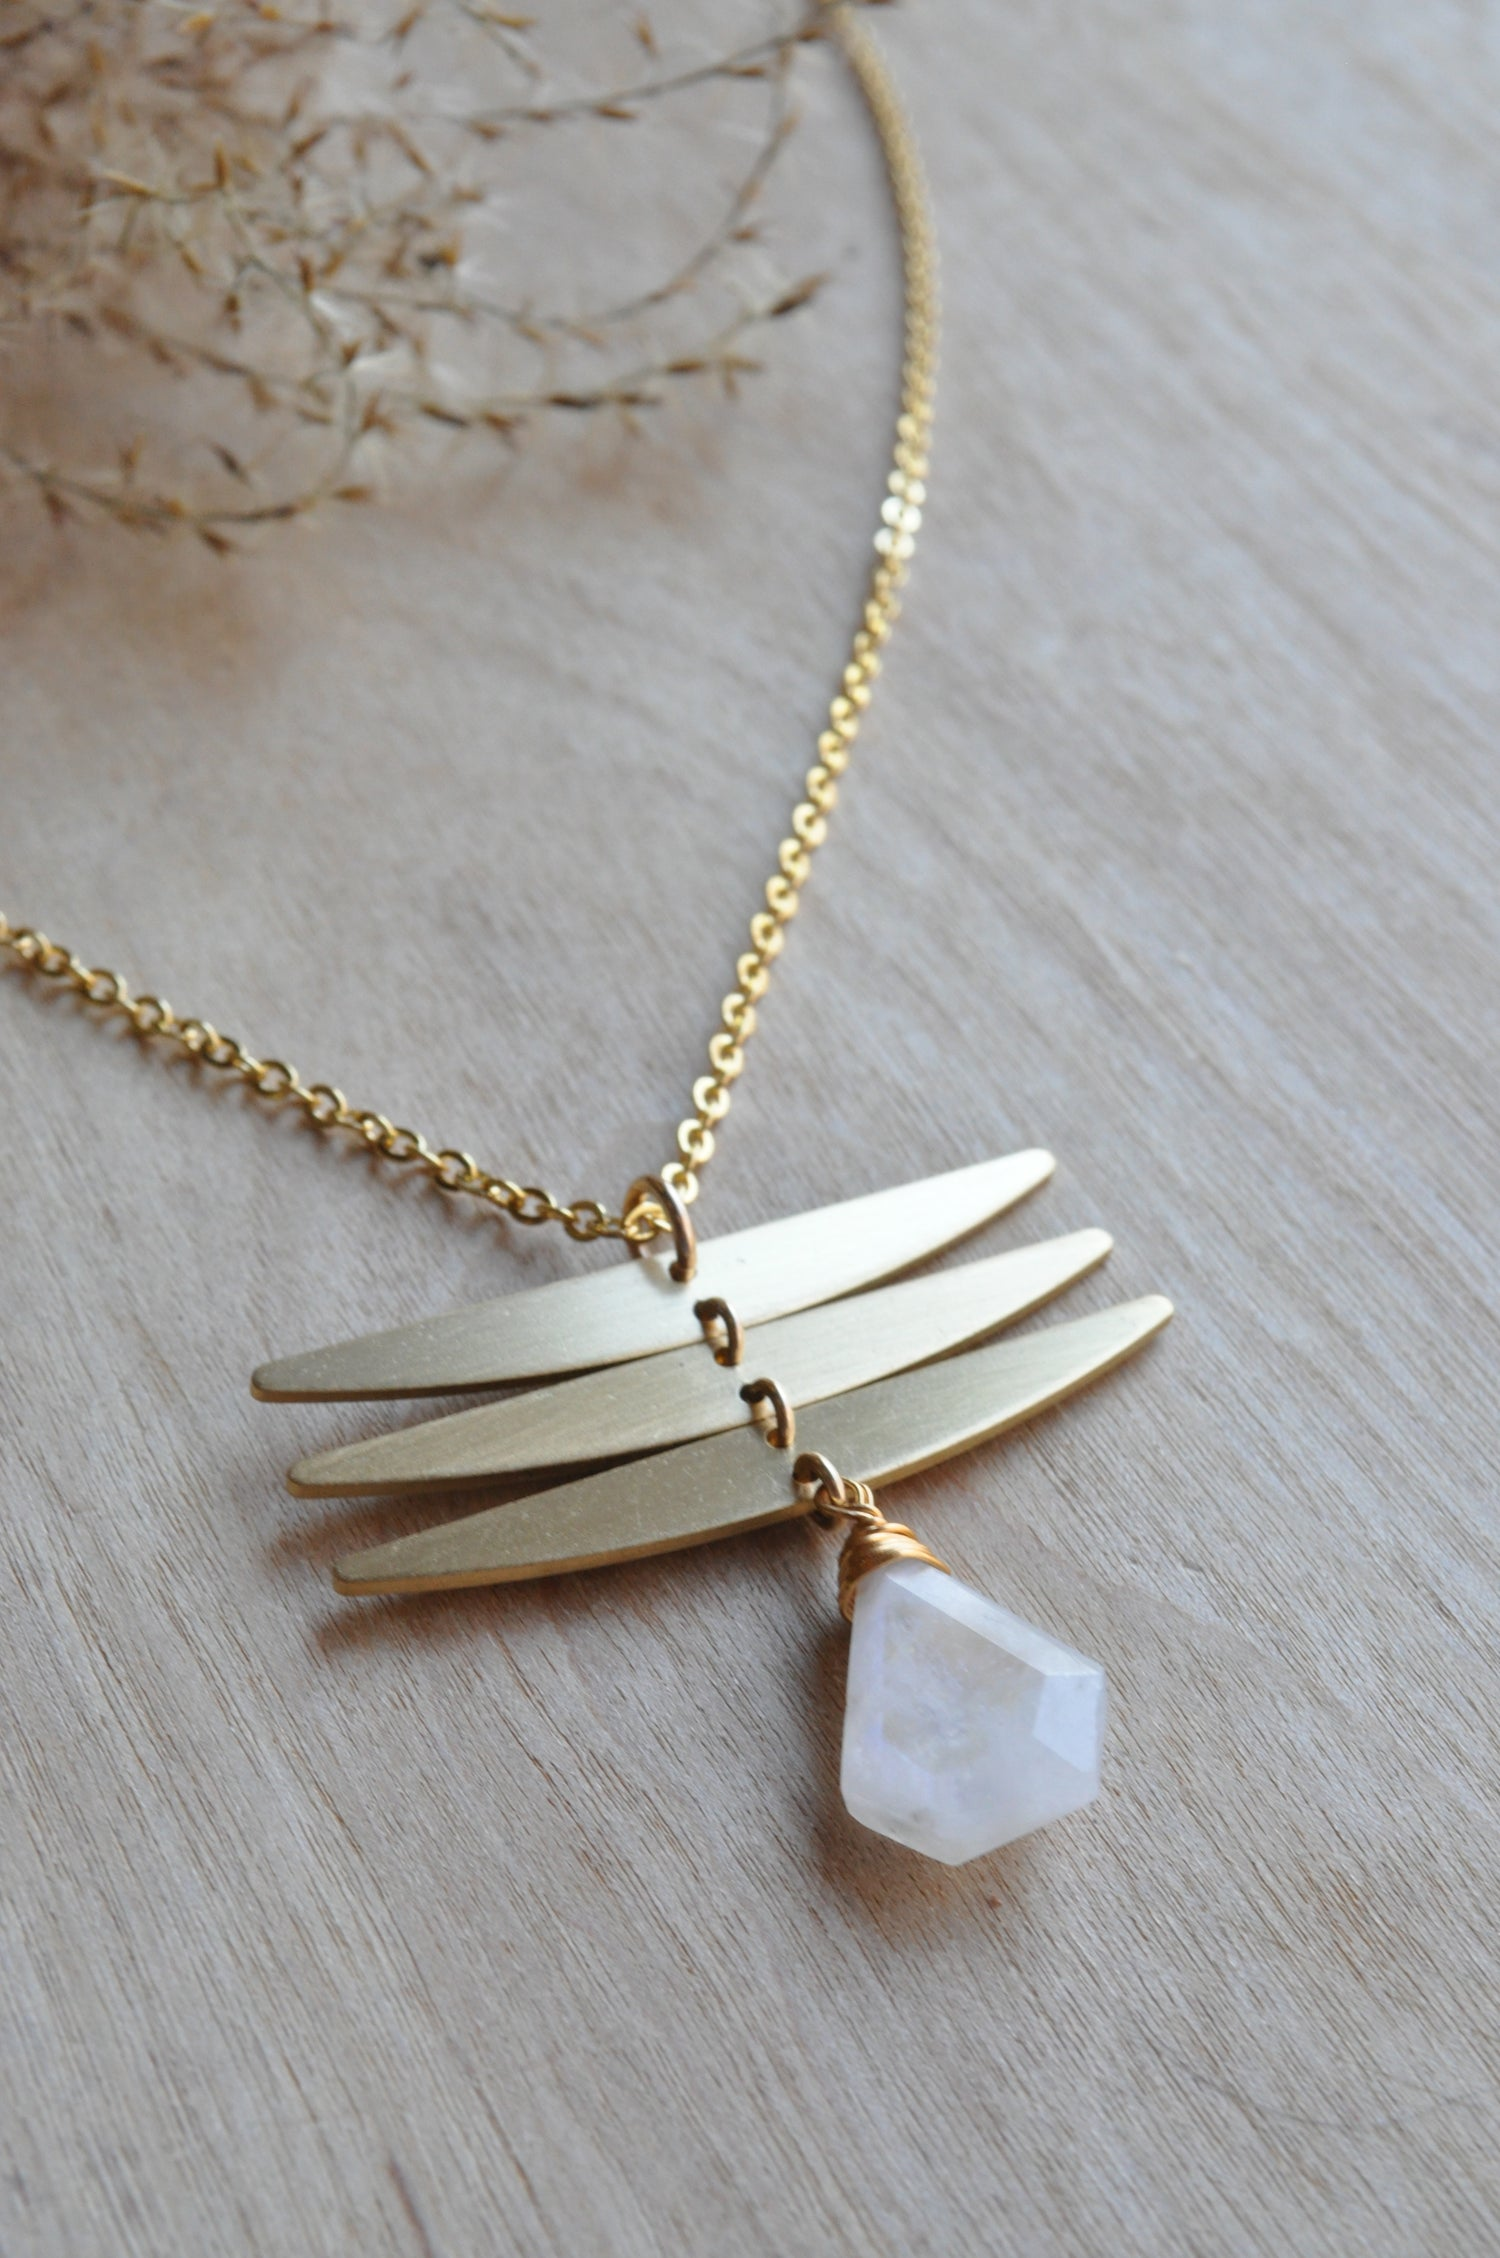 Image of The Dragonfly Necklace in Rainbow Moonstone